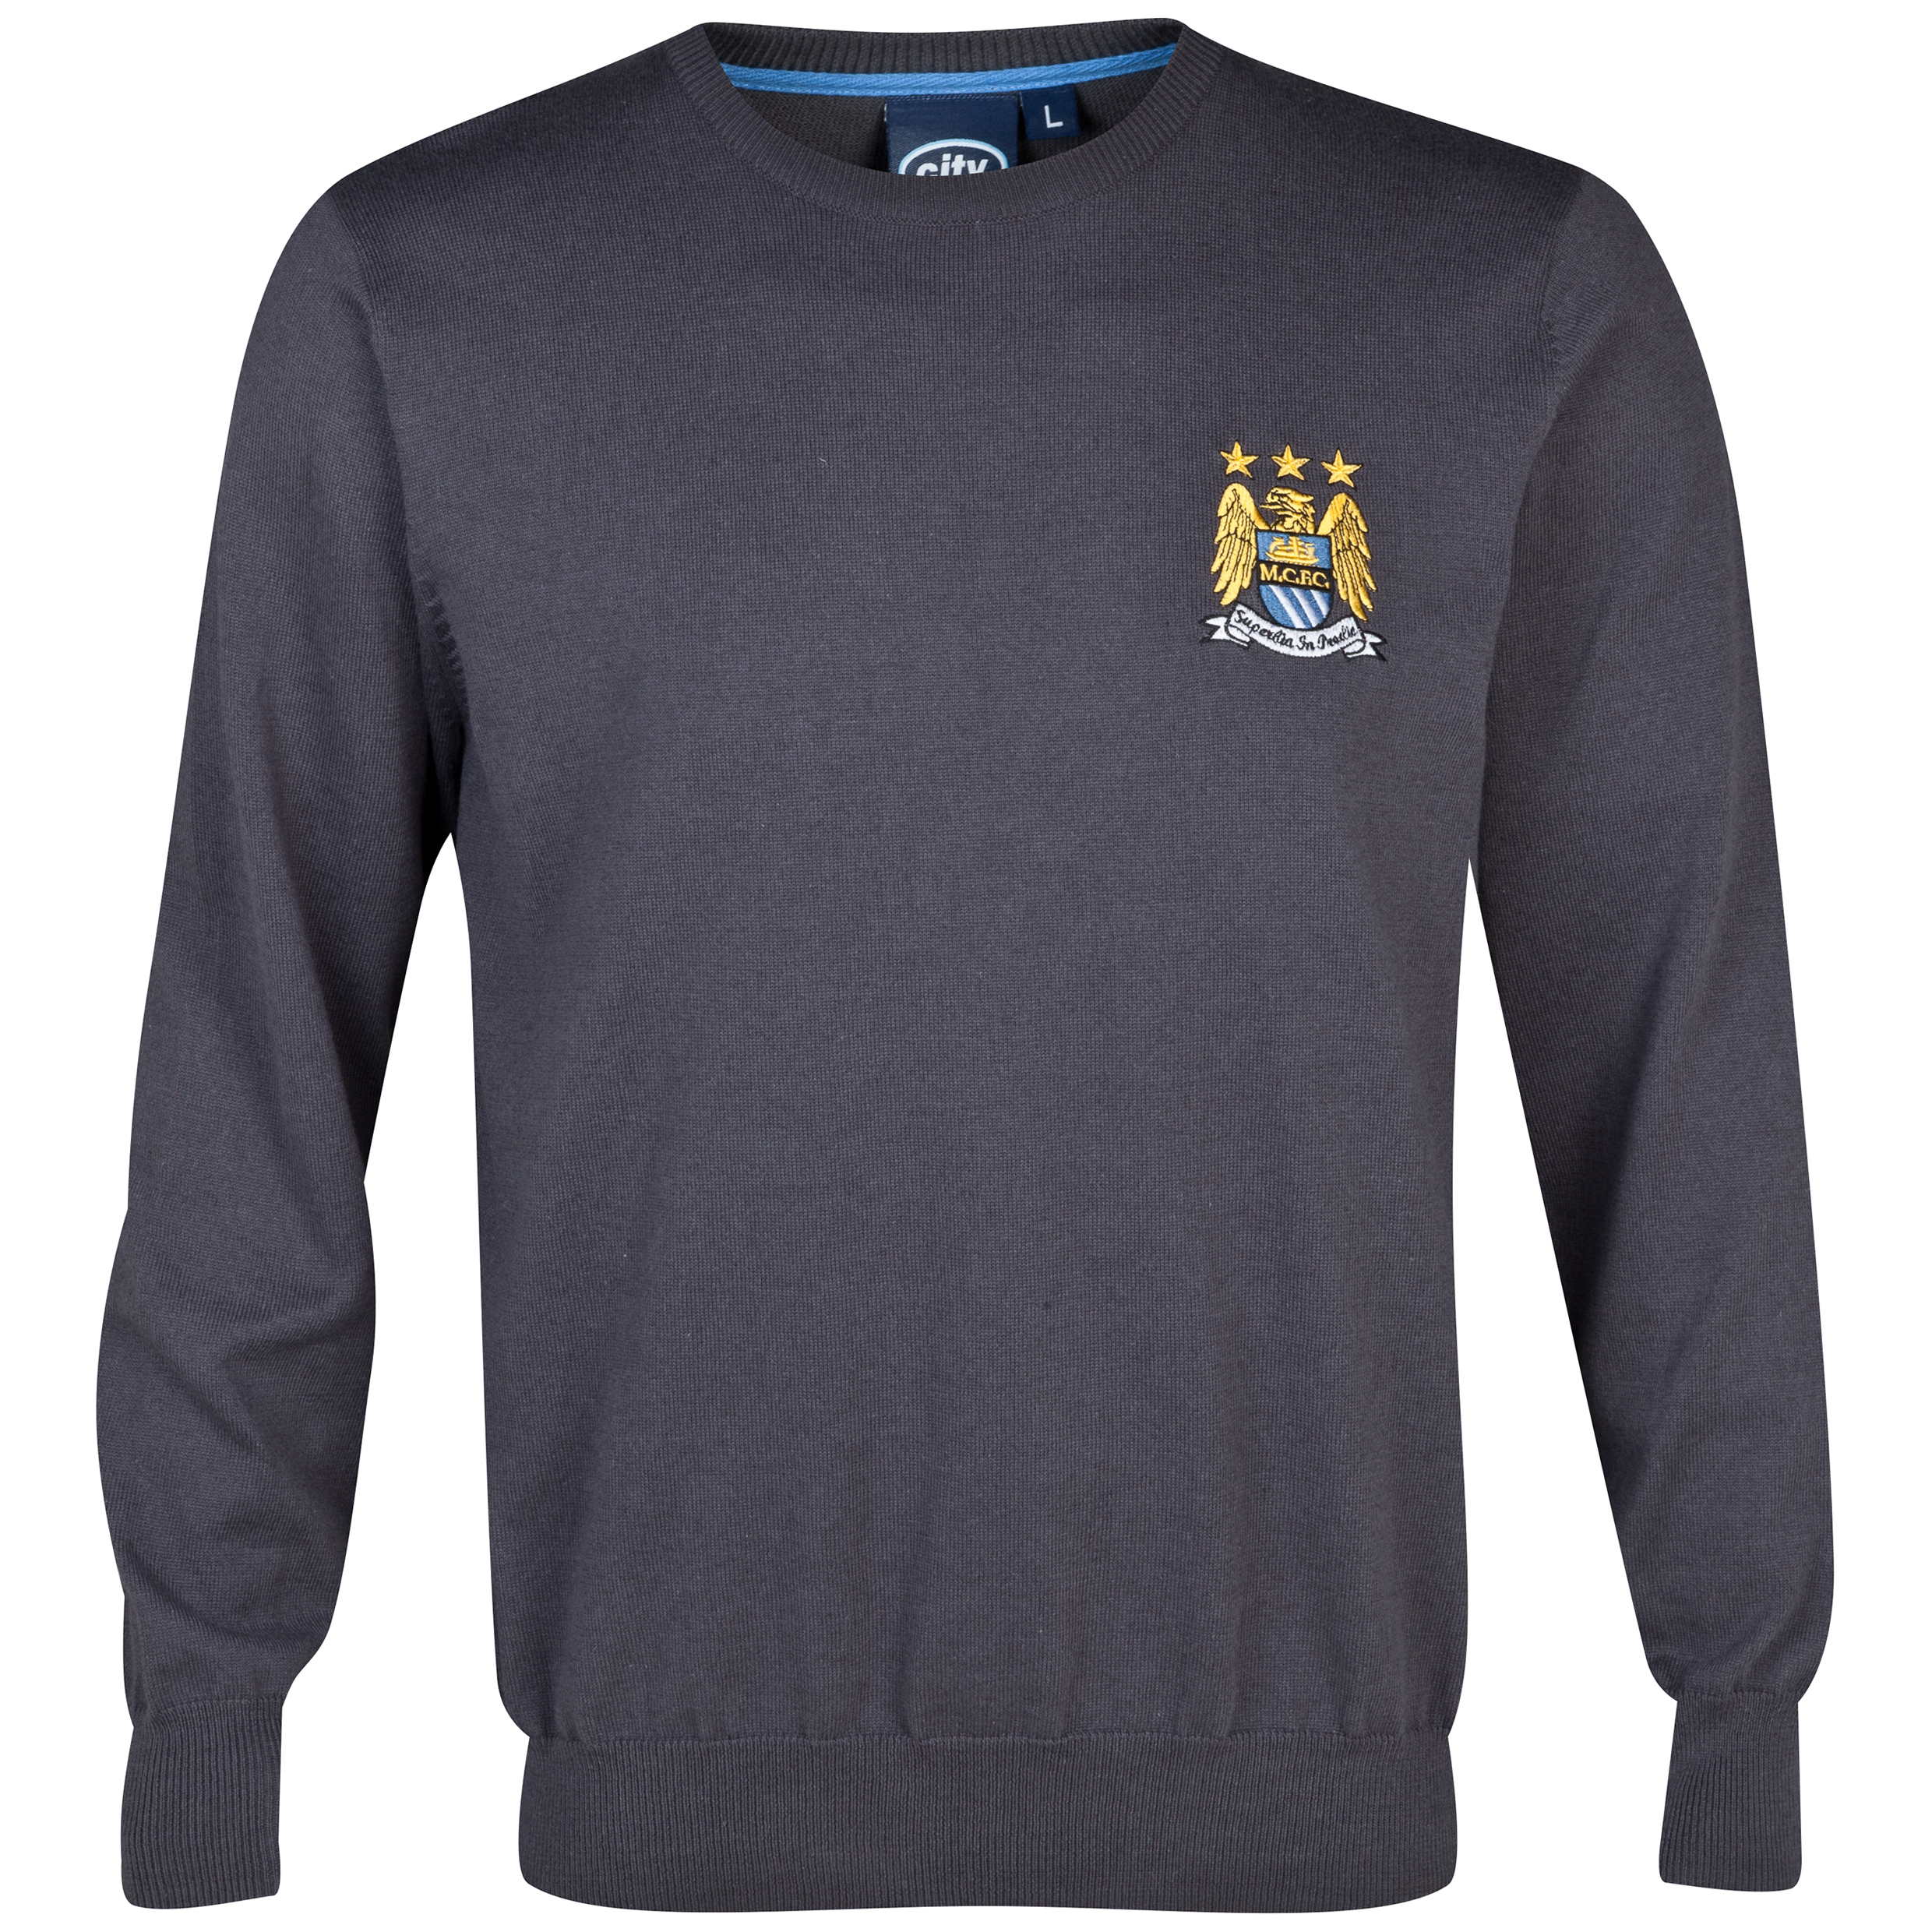 Manchester City Essentials Yarn Crew Neck Jumper Charcoal